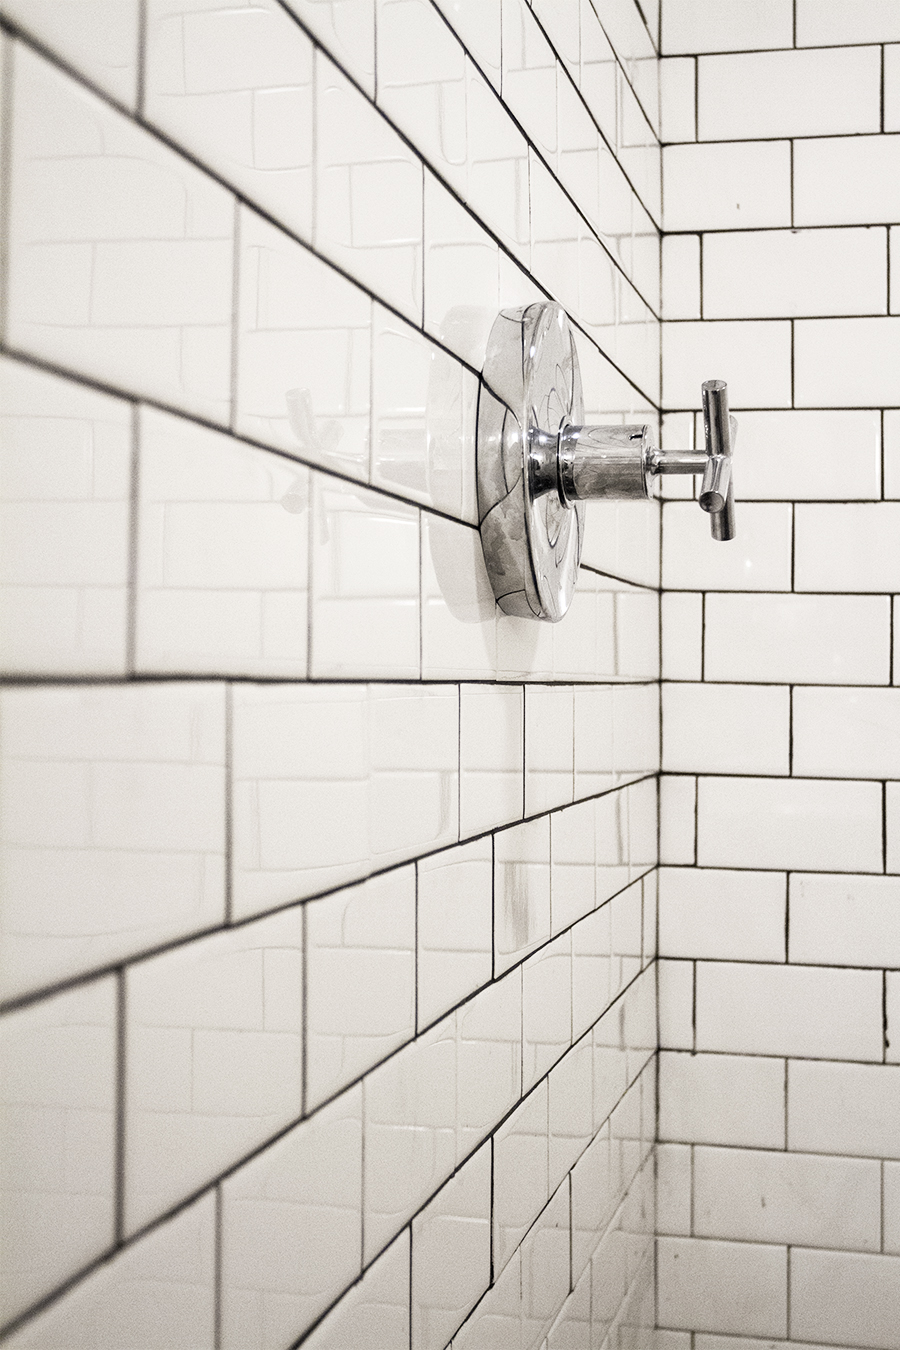 Kohler Fixtures with Subway Tile